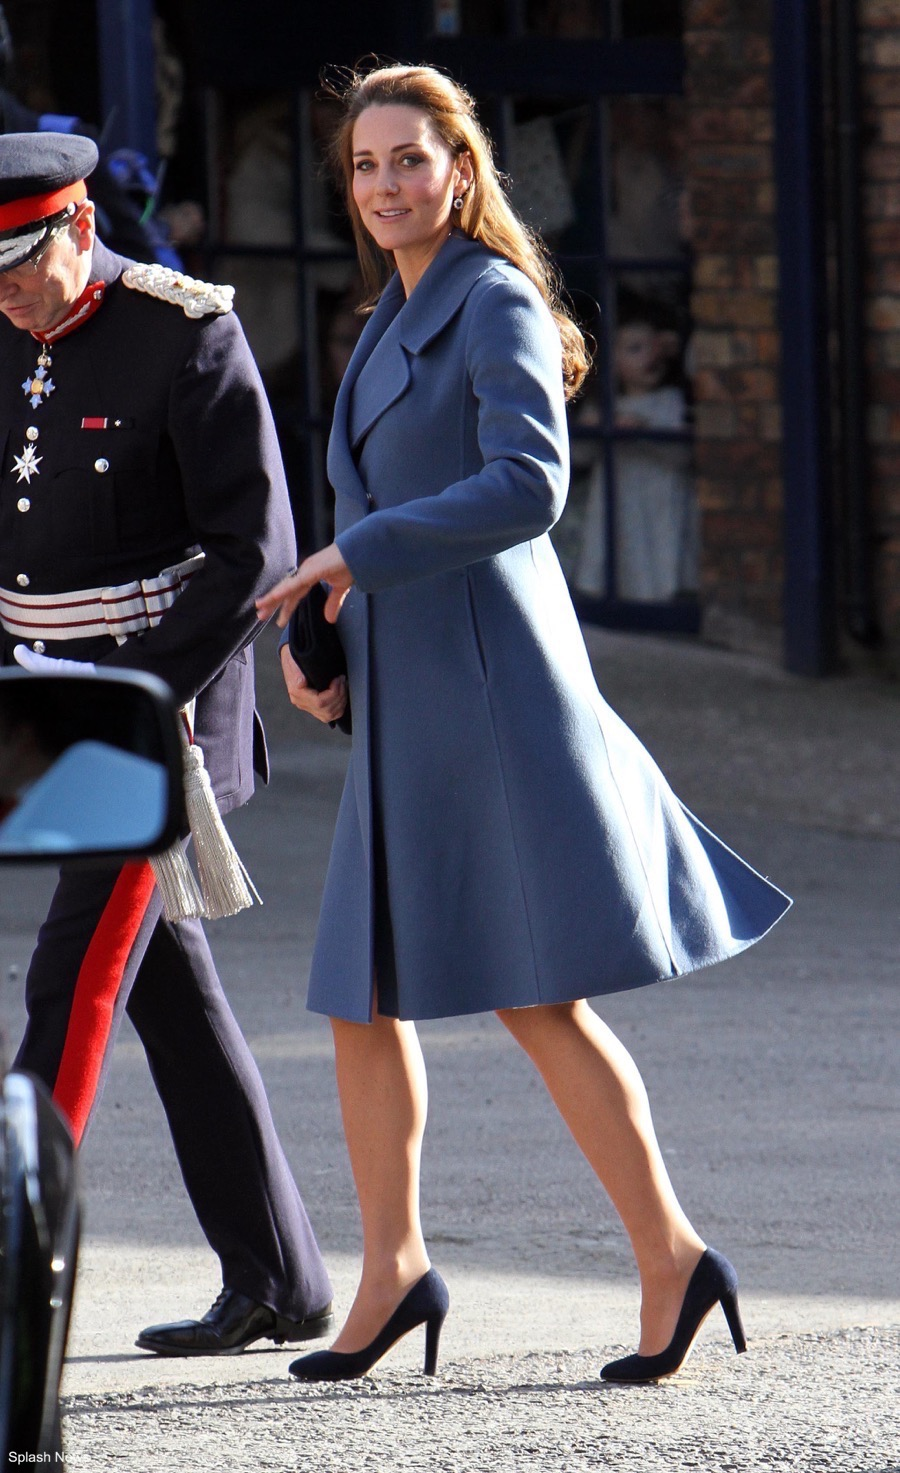 Kate middleton's outfit from Emma Bridgewater visit 2015. Kate was pregnant with Charlotte at the time. She chose this blue coat from Sportmax.